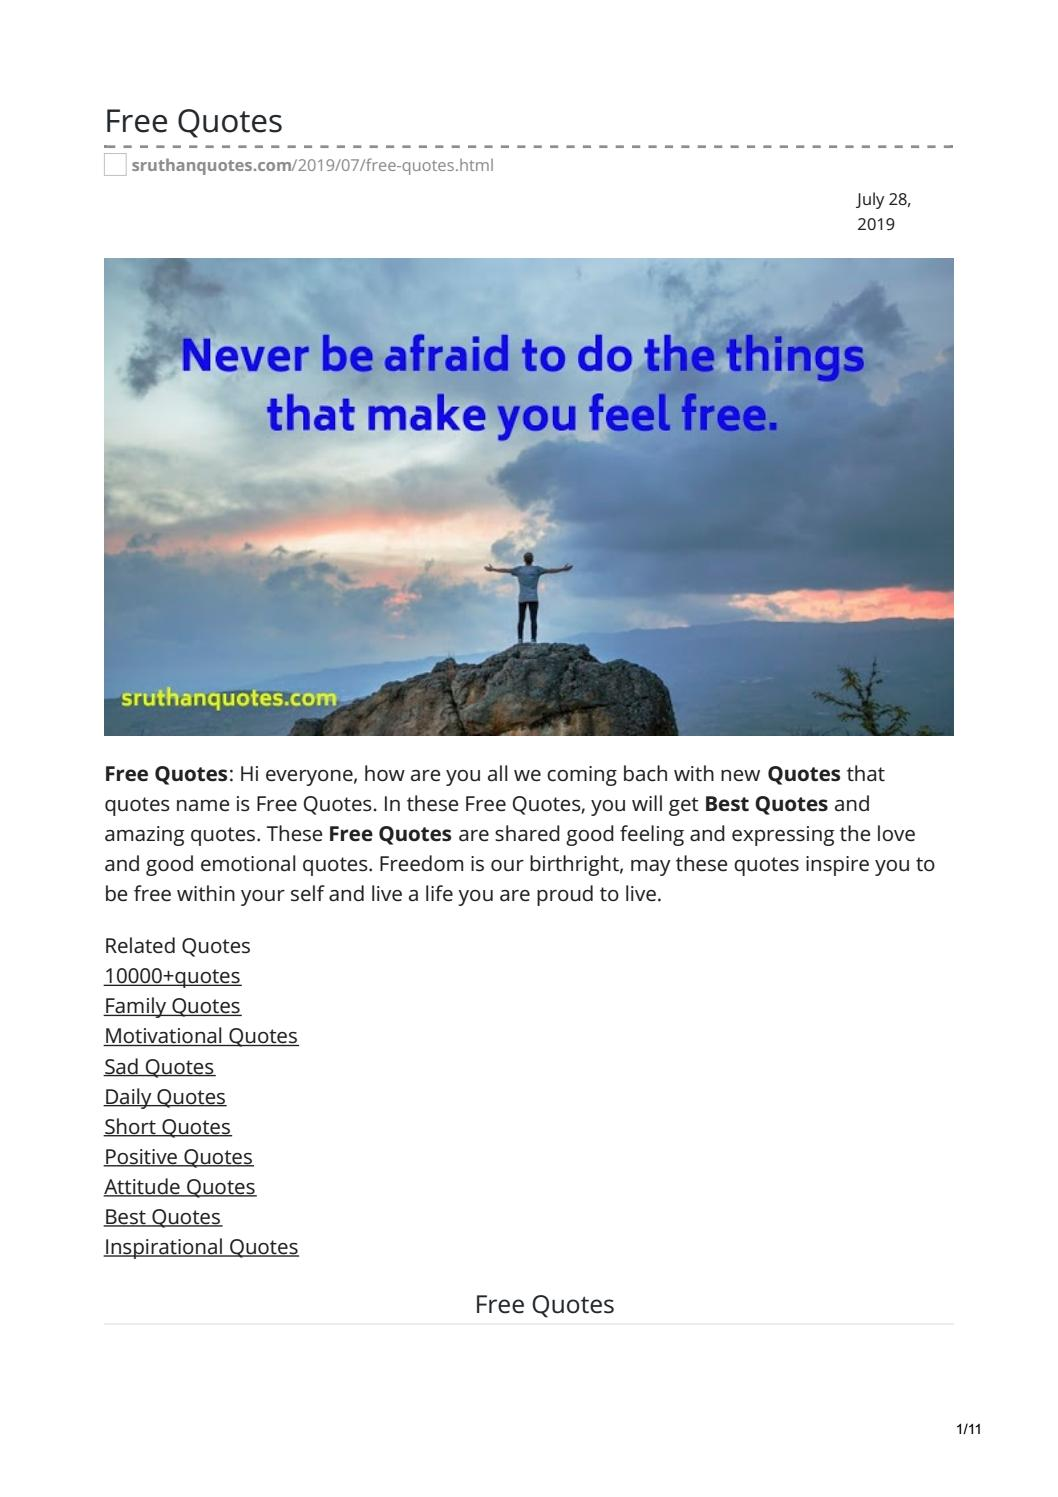 Free Quotes by sruthanquotes - issuu